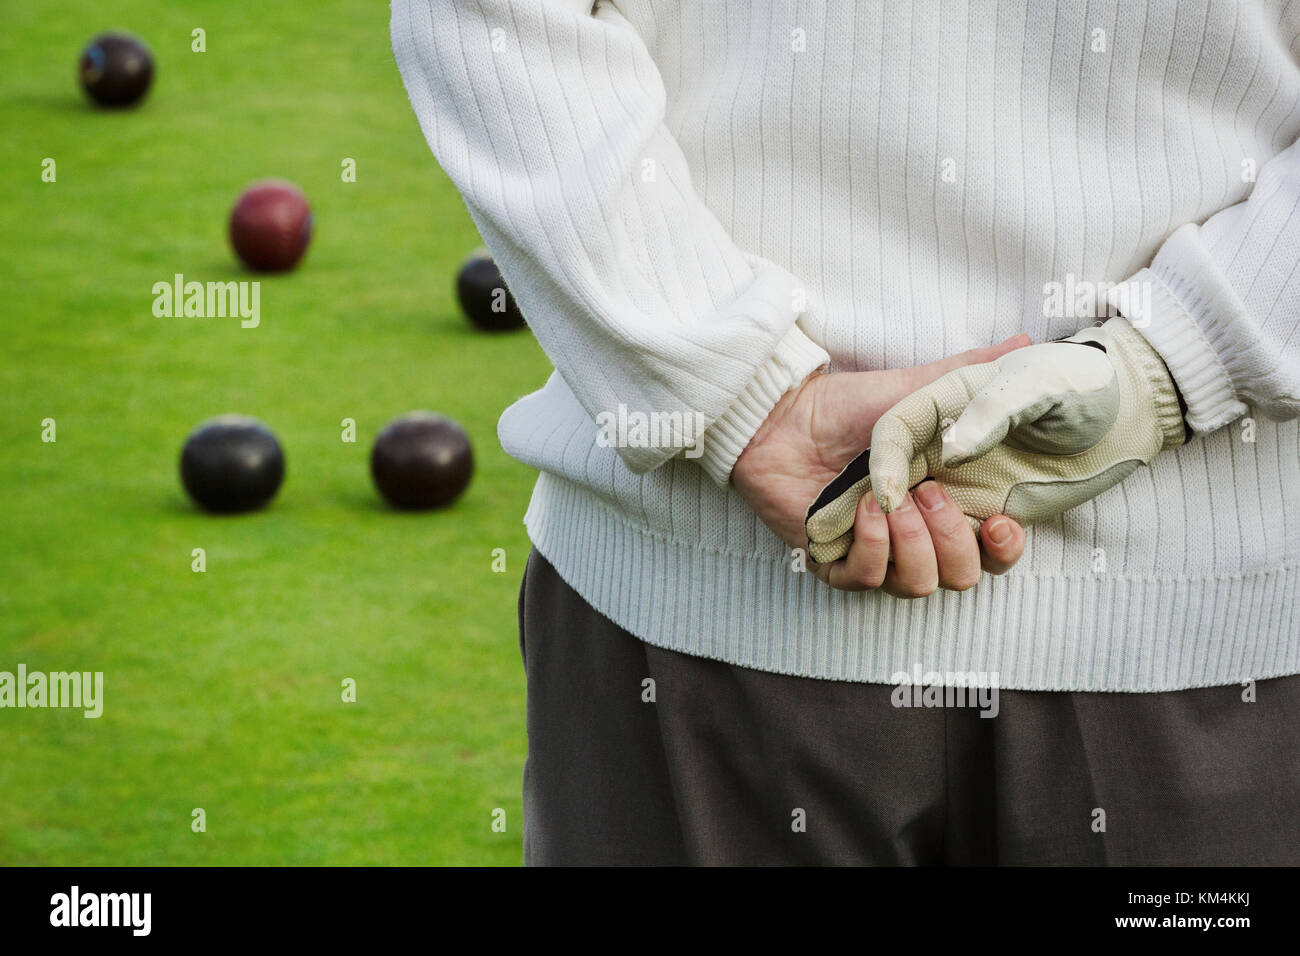 Rear view, a man standing with his hands clasped behind him, one hand in a playing glove, at a lawn bowls match, - Stock Image